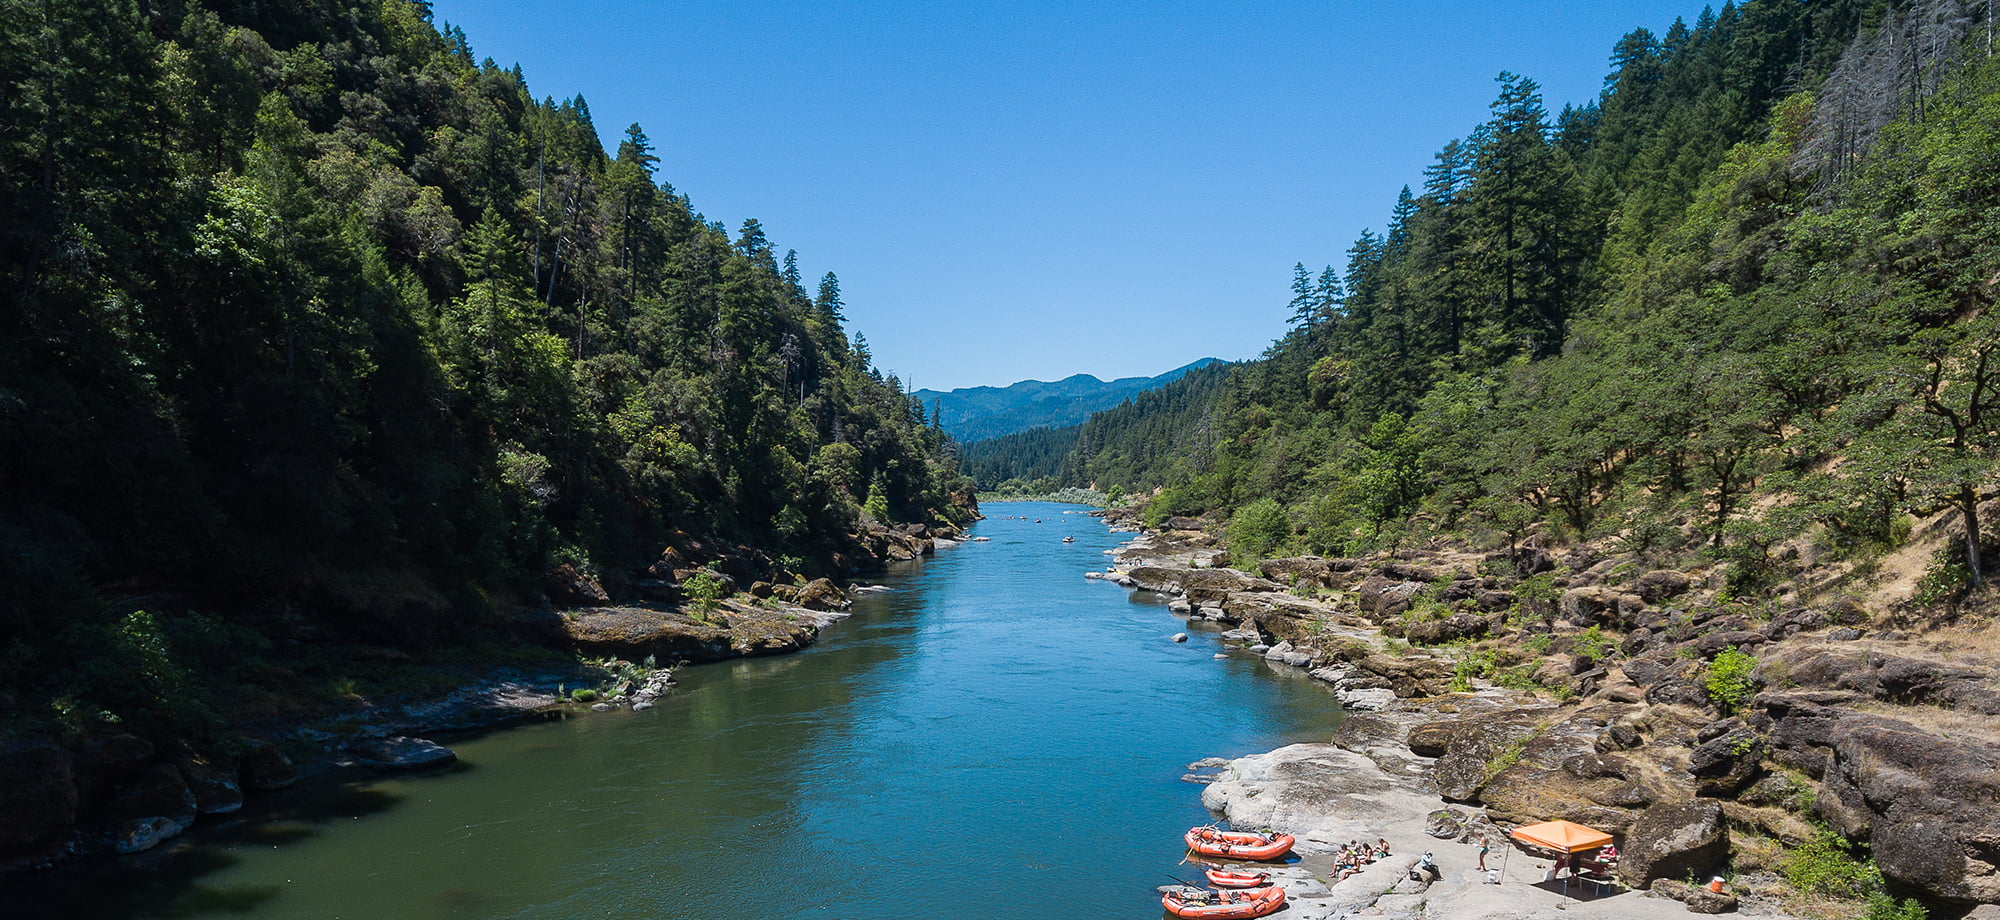 Oregon's Wild and Scenic Rogue River